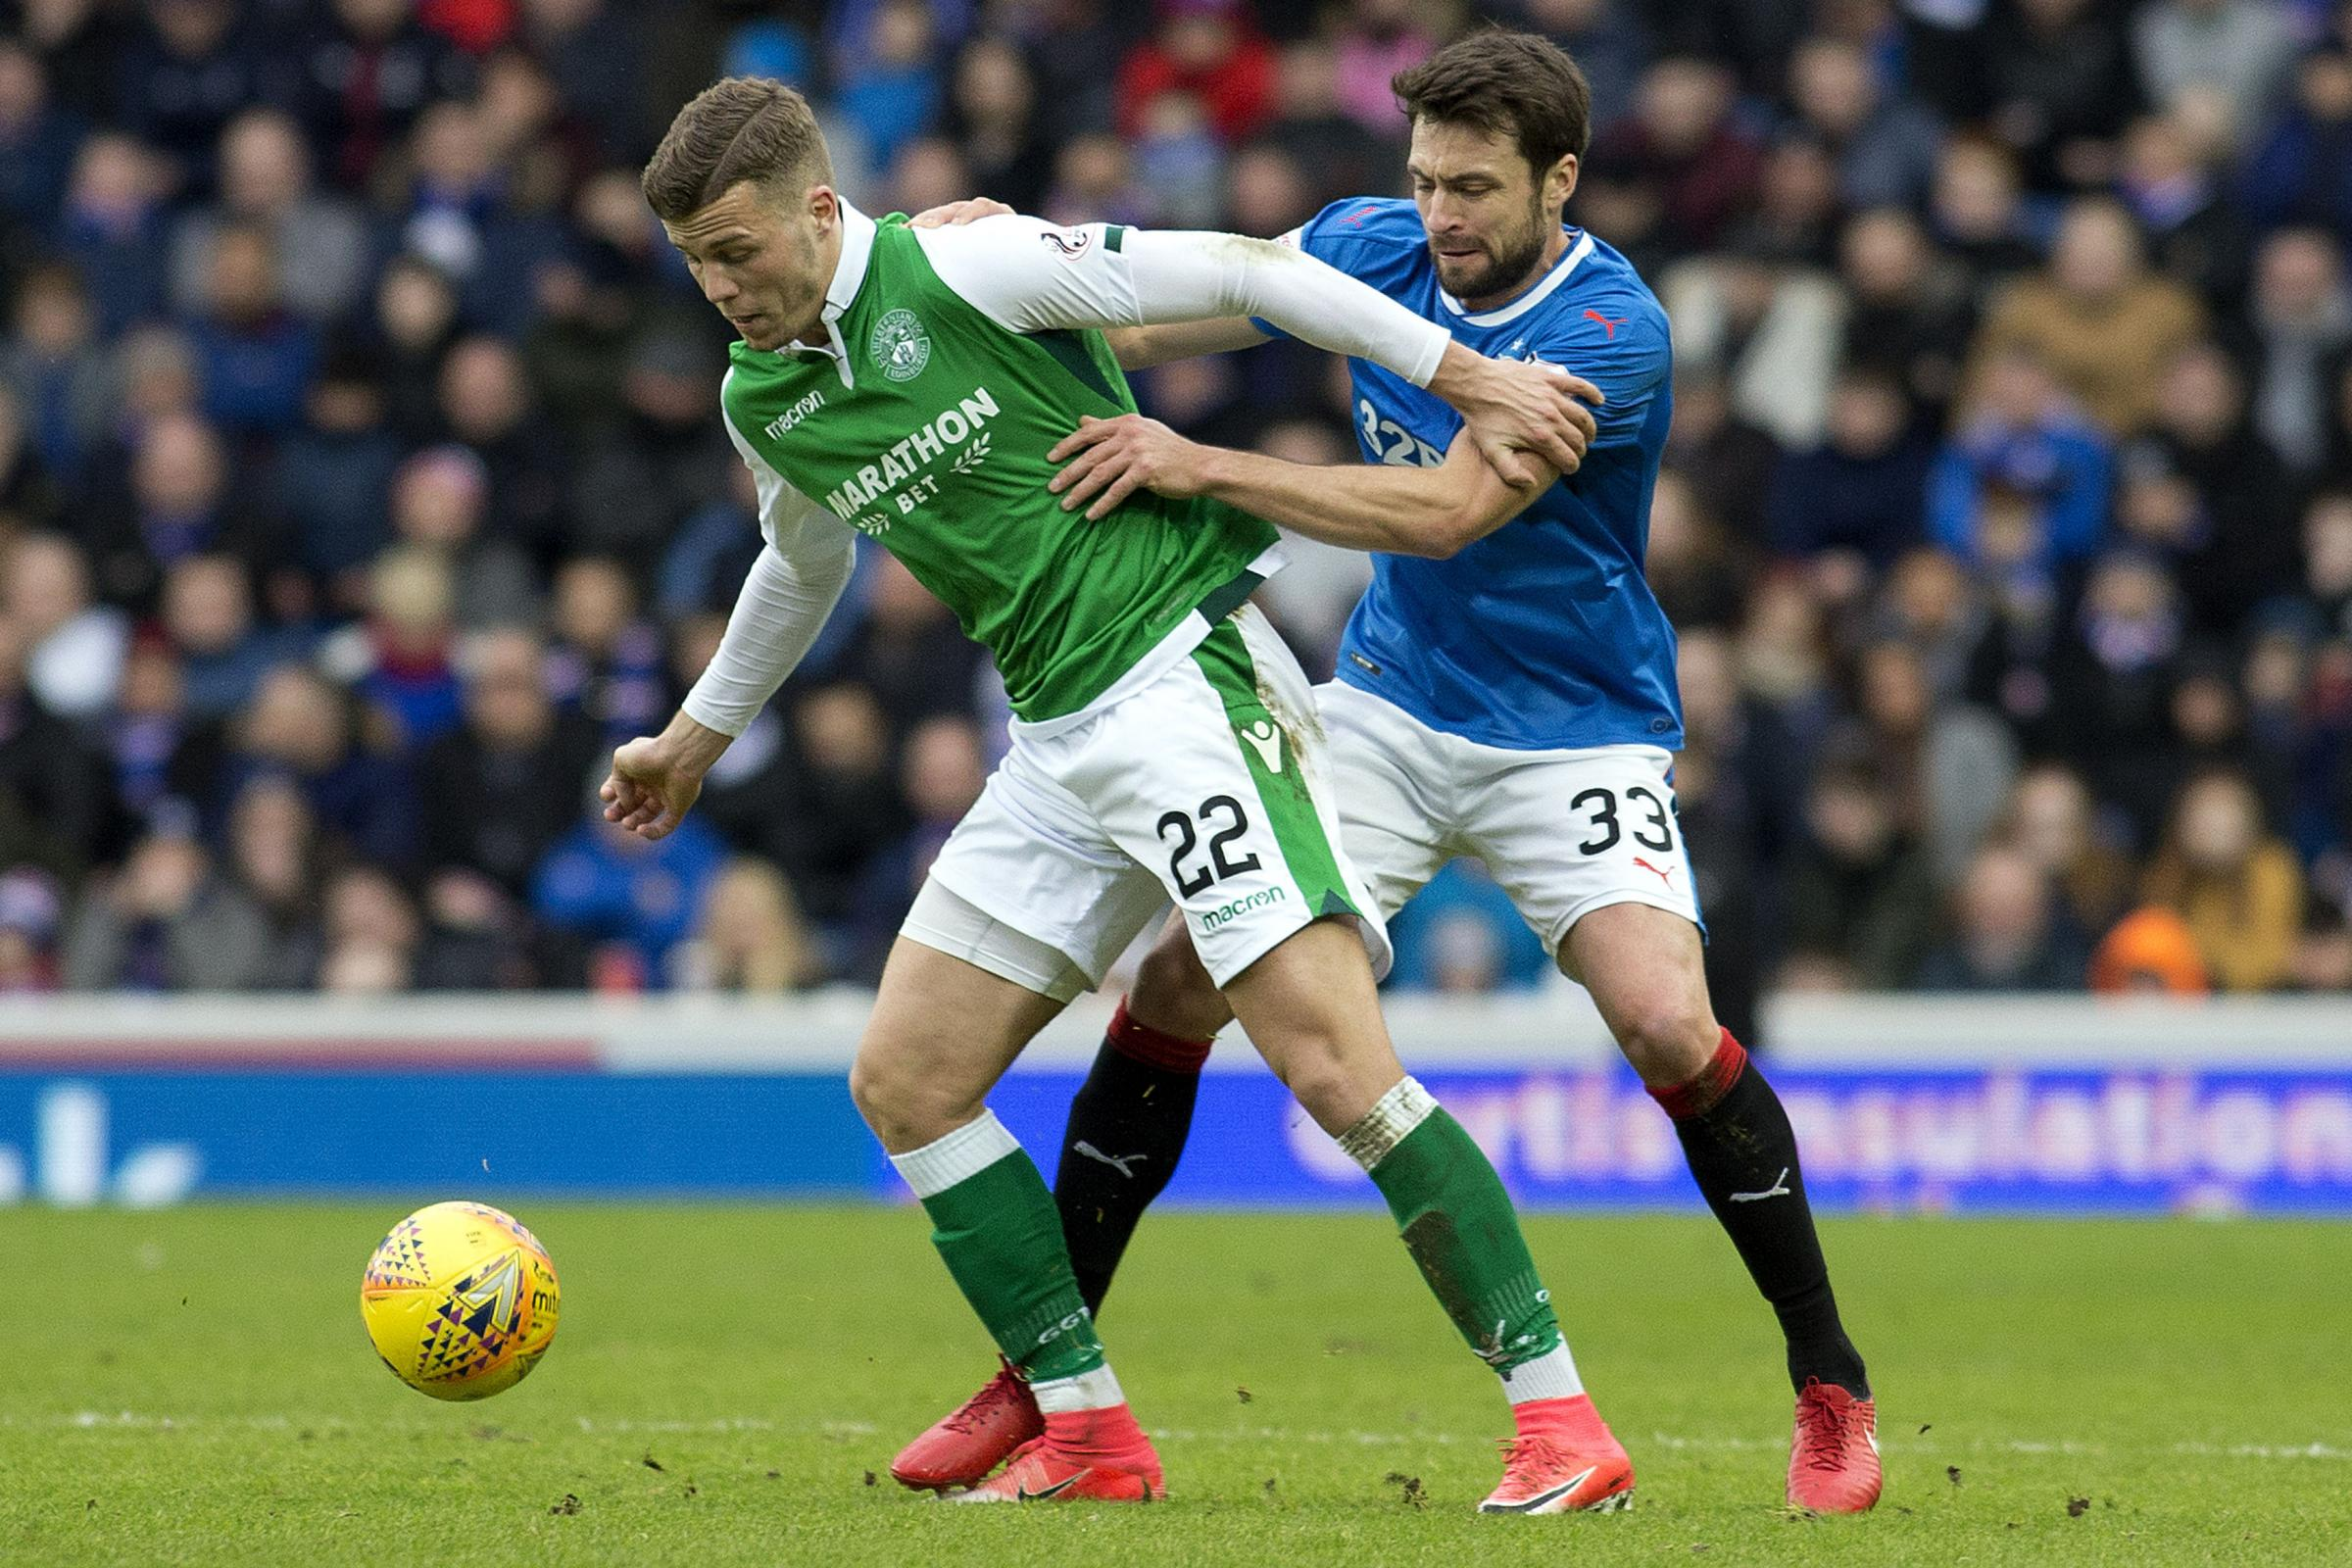 Rangers' Russell Martin (right) and Hibernian's Florian Kamberi battle for the ball